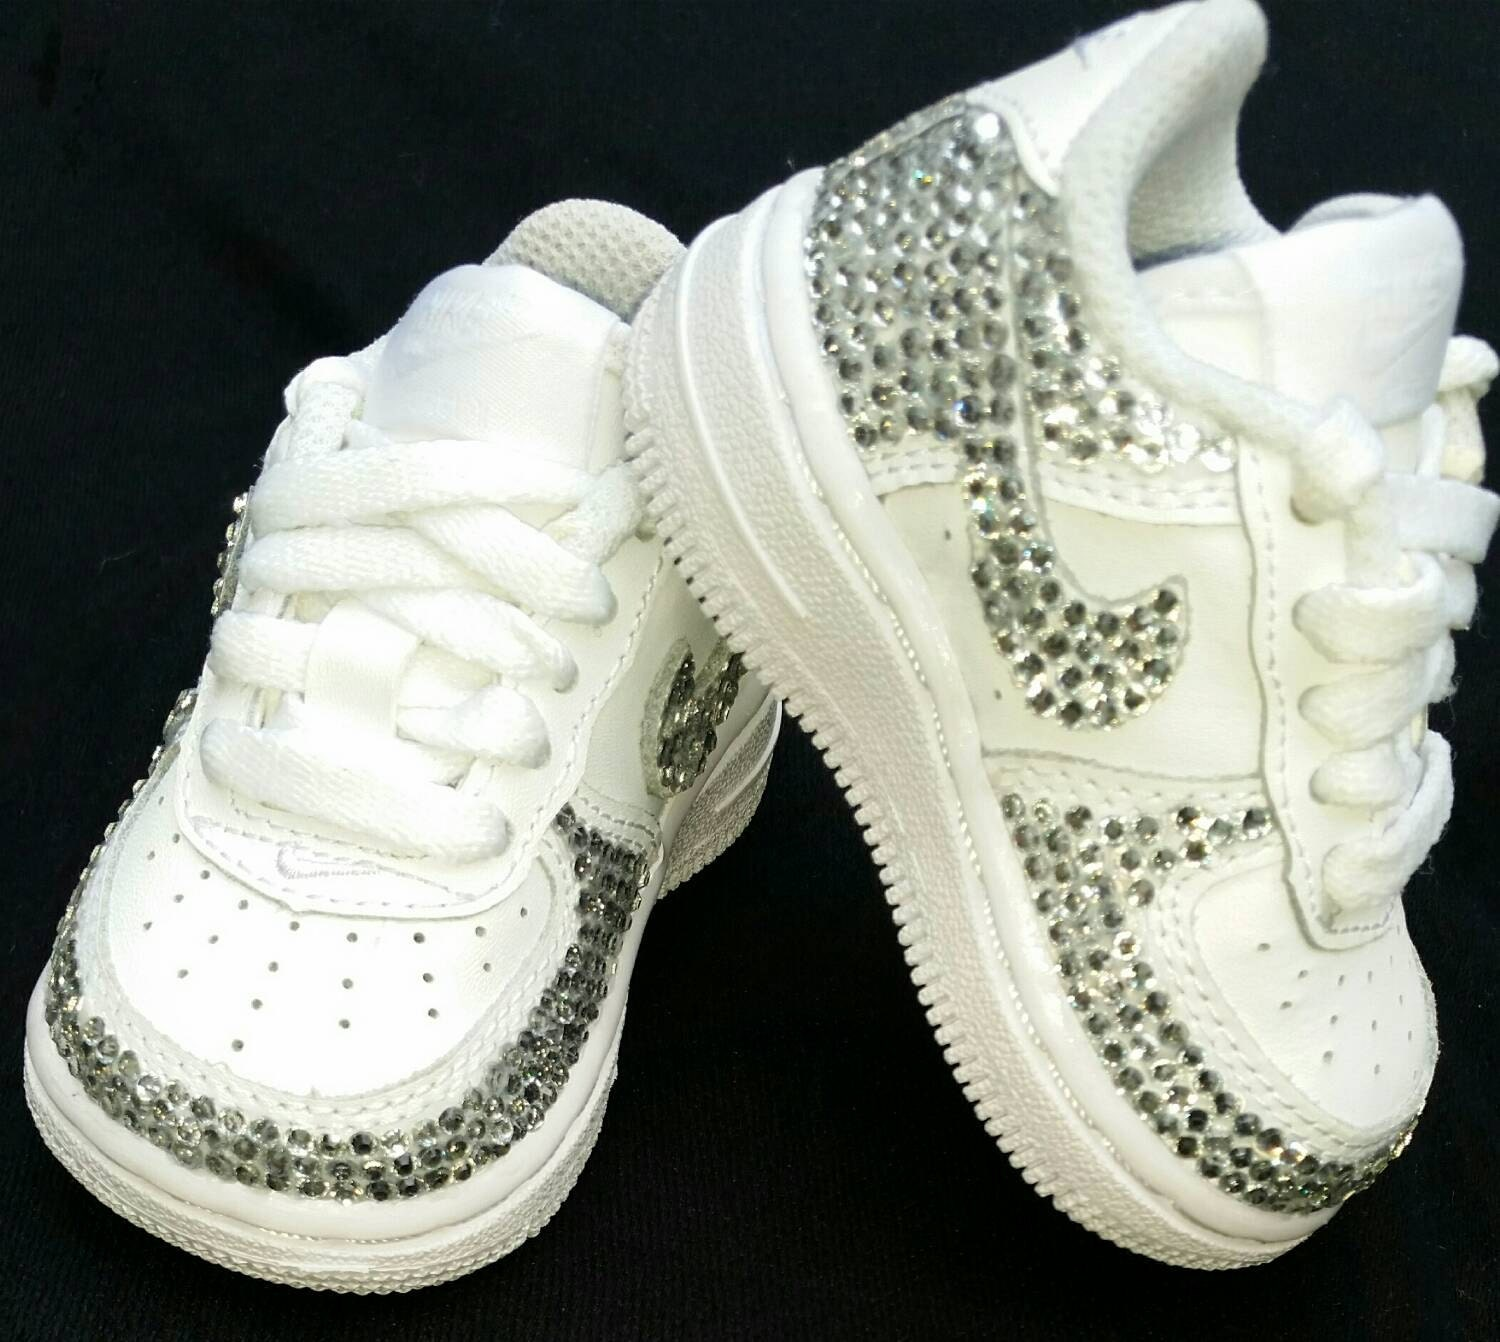 86035eb05460f Custom Bling Air Force Ones Bling Tennis Shoes Bling & | Etsy